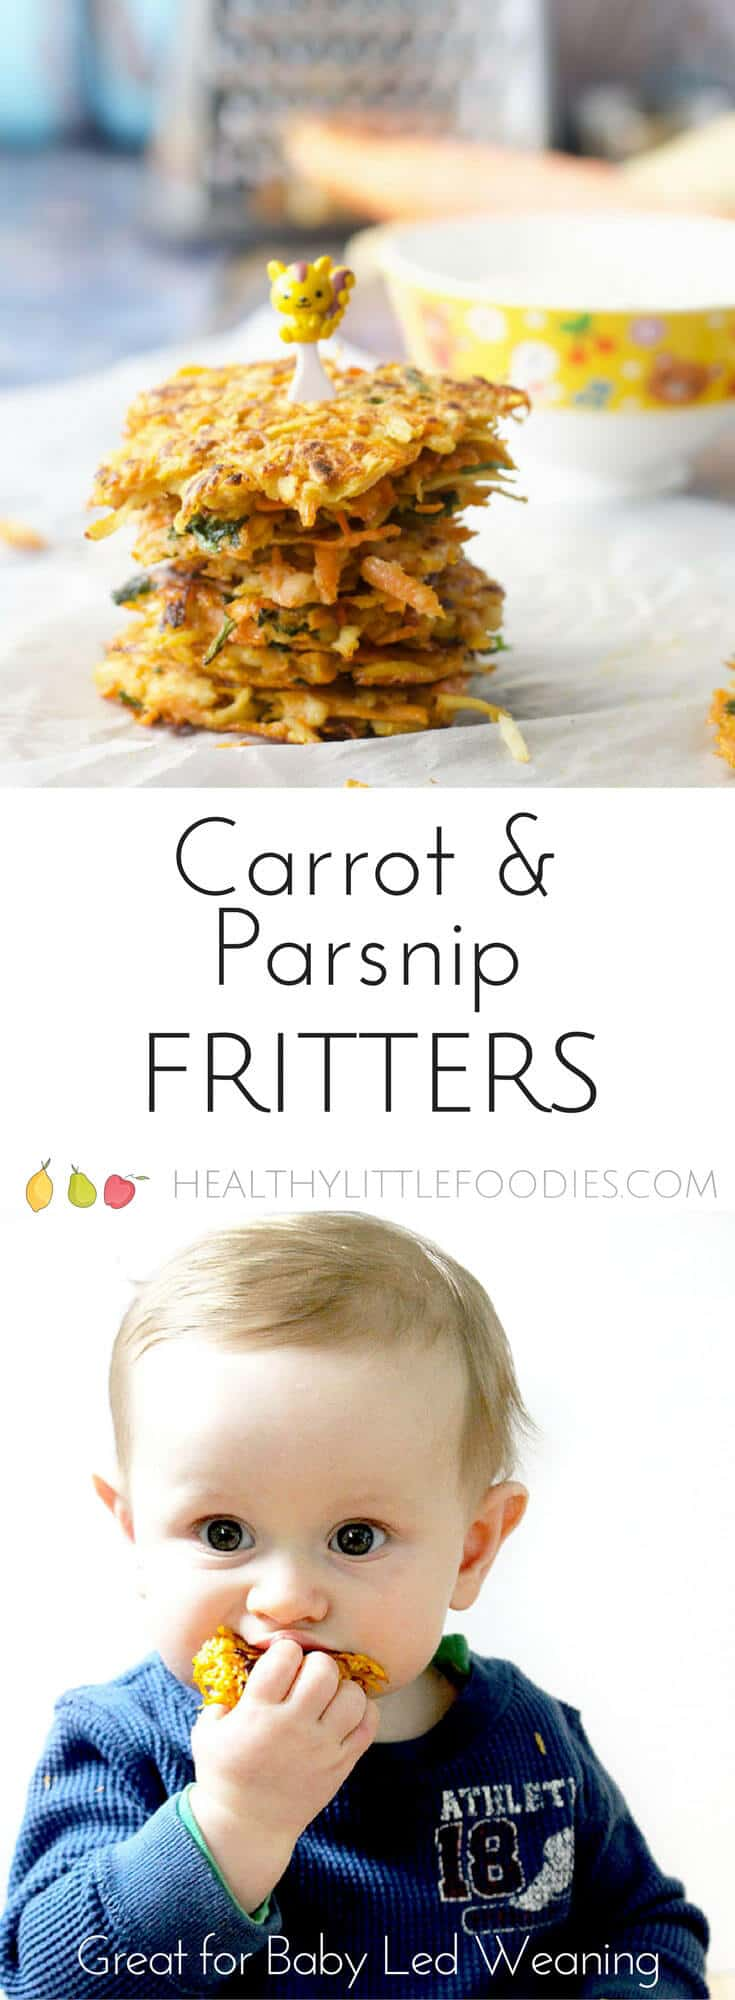 Made mainly from veggies these carrot and parsnip fritters are perfect for kids or for baby-led weaning. #babyledweaning #blw #kidfood #kidsfood #veggies #fritters